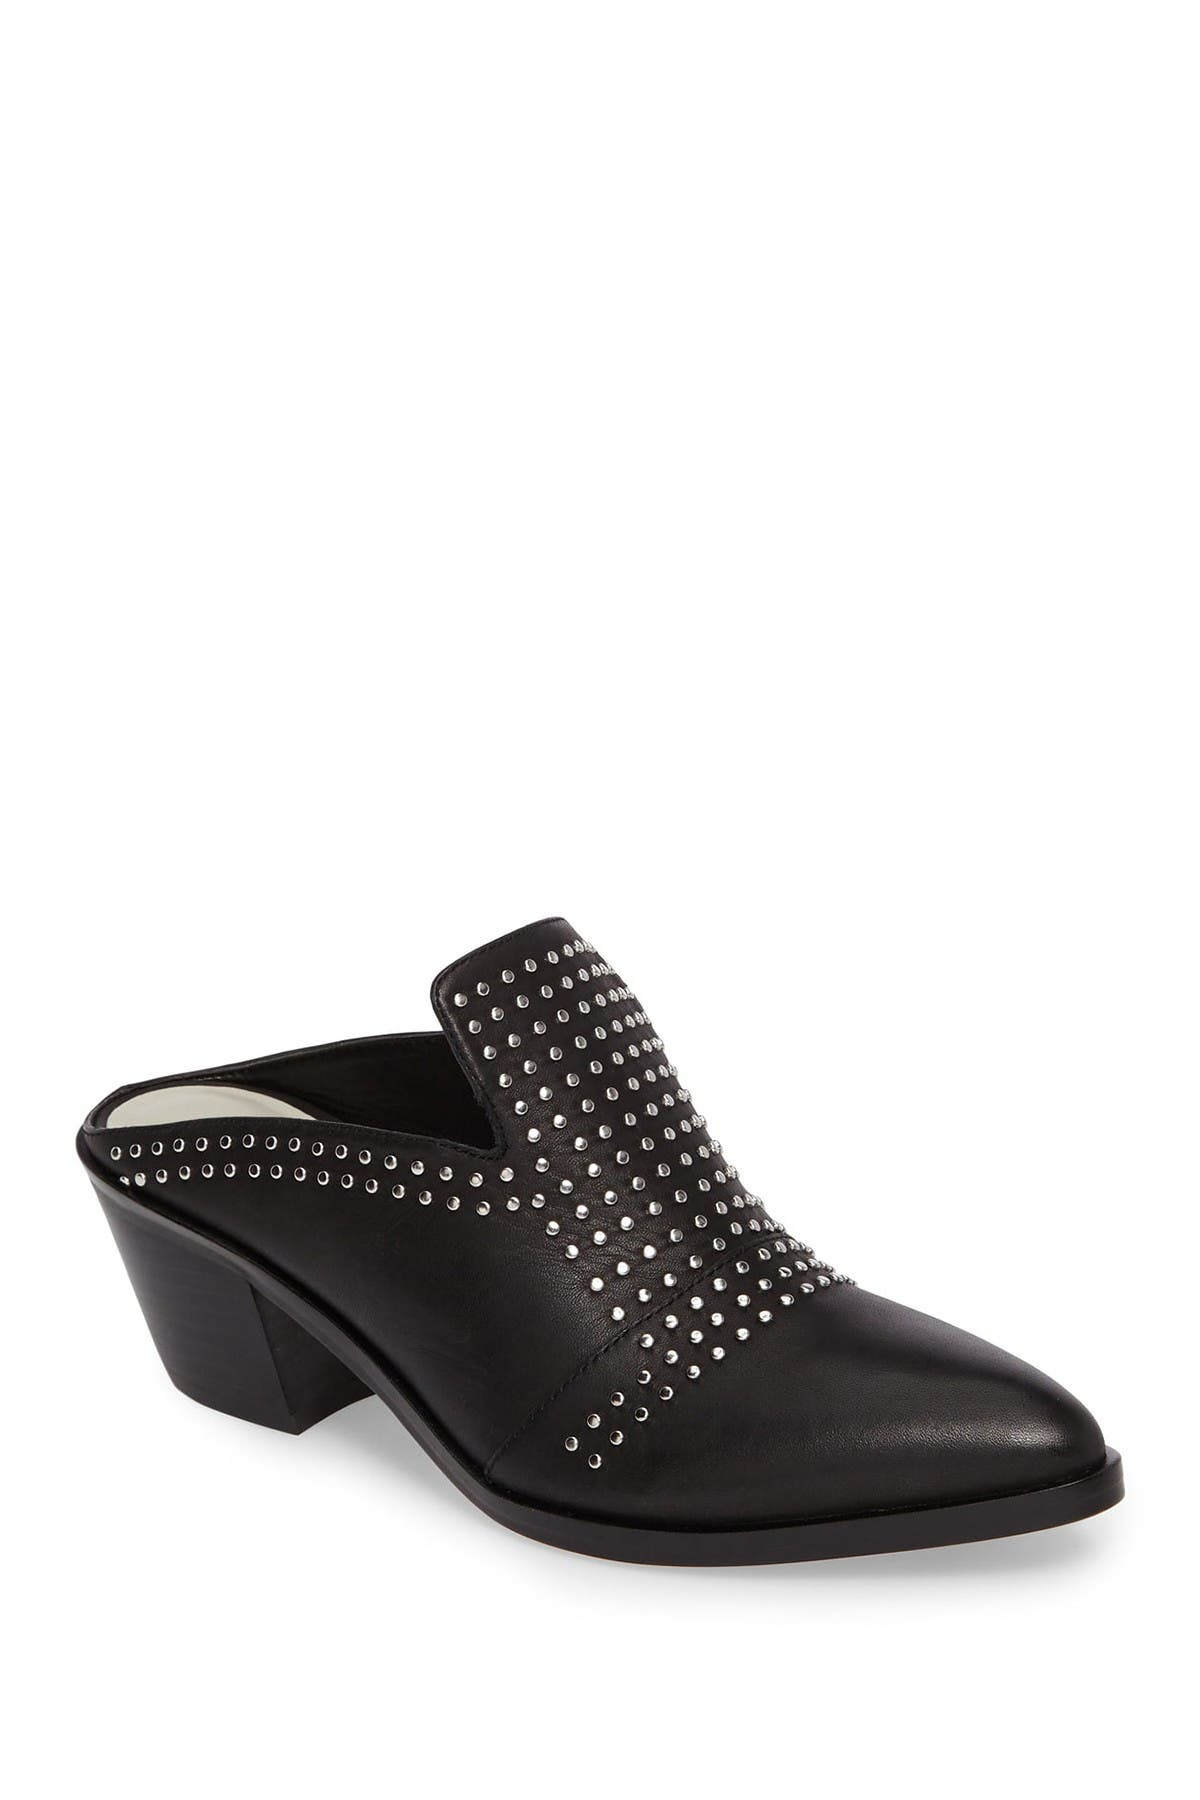 Image of 1.State Lon Leather Casual Studded Mule